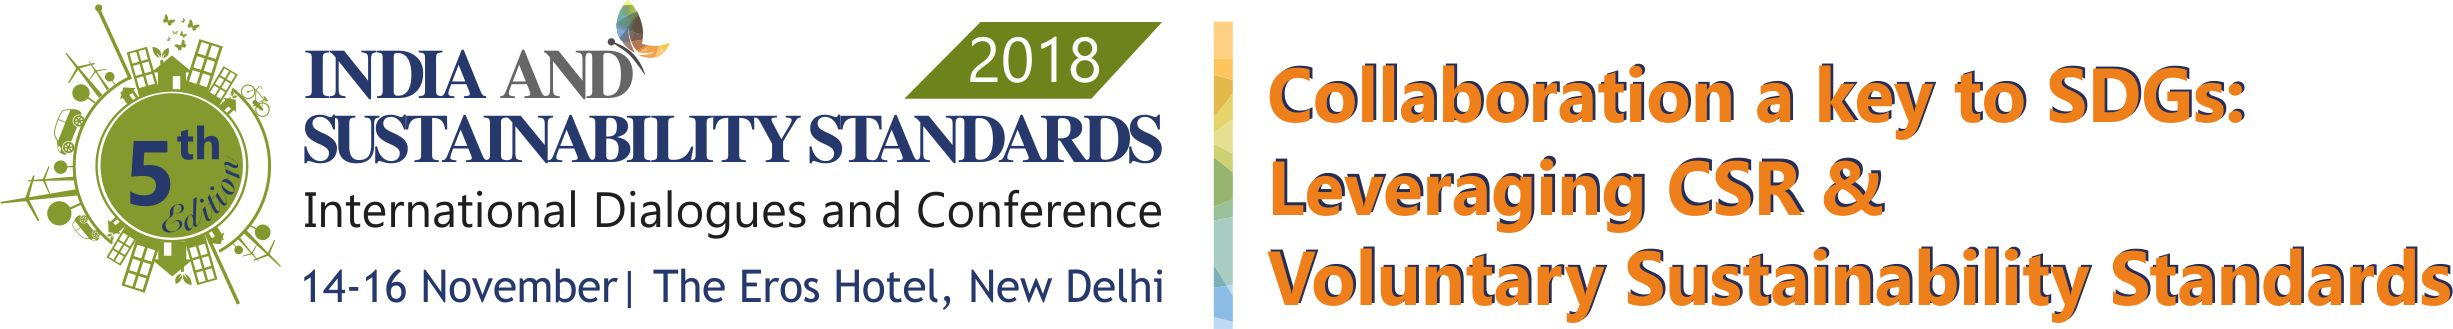 CRB Conference: 5th India & Sustainability Standards